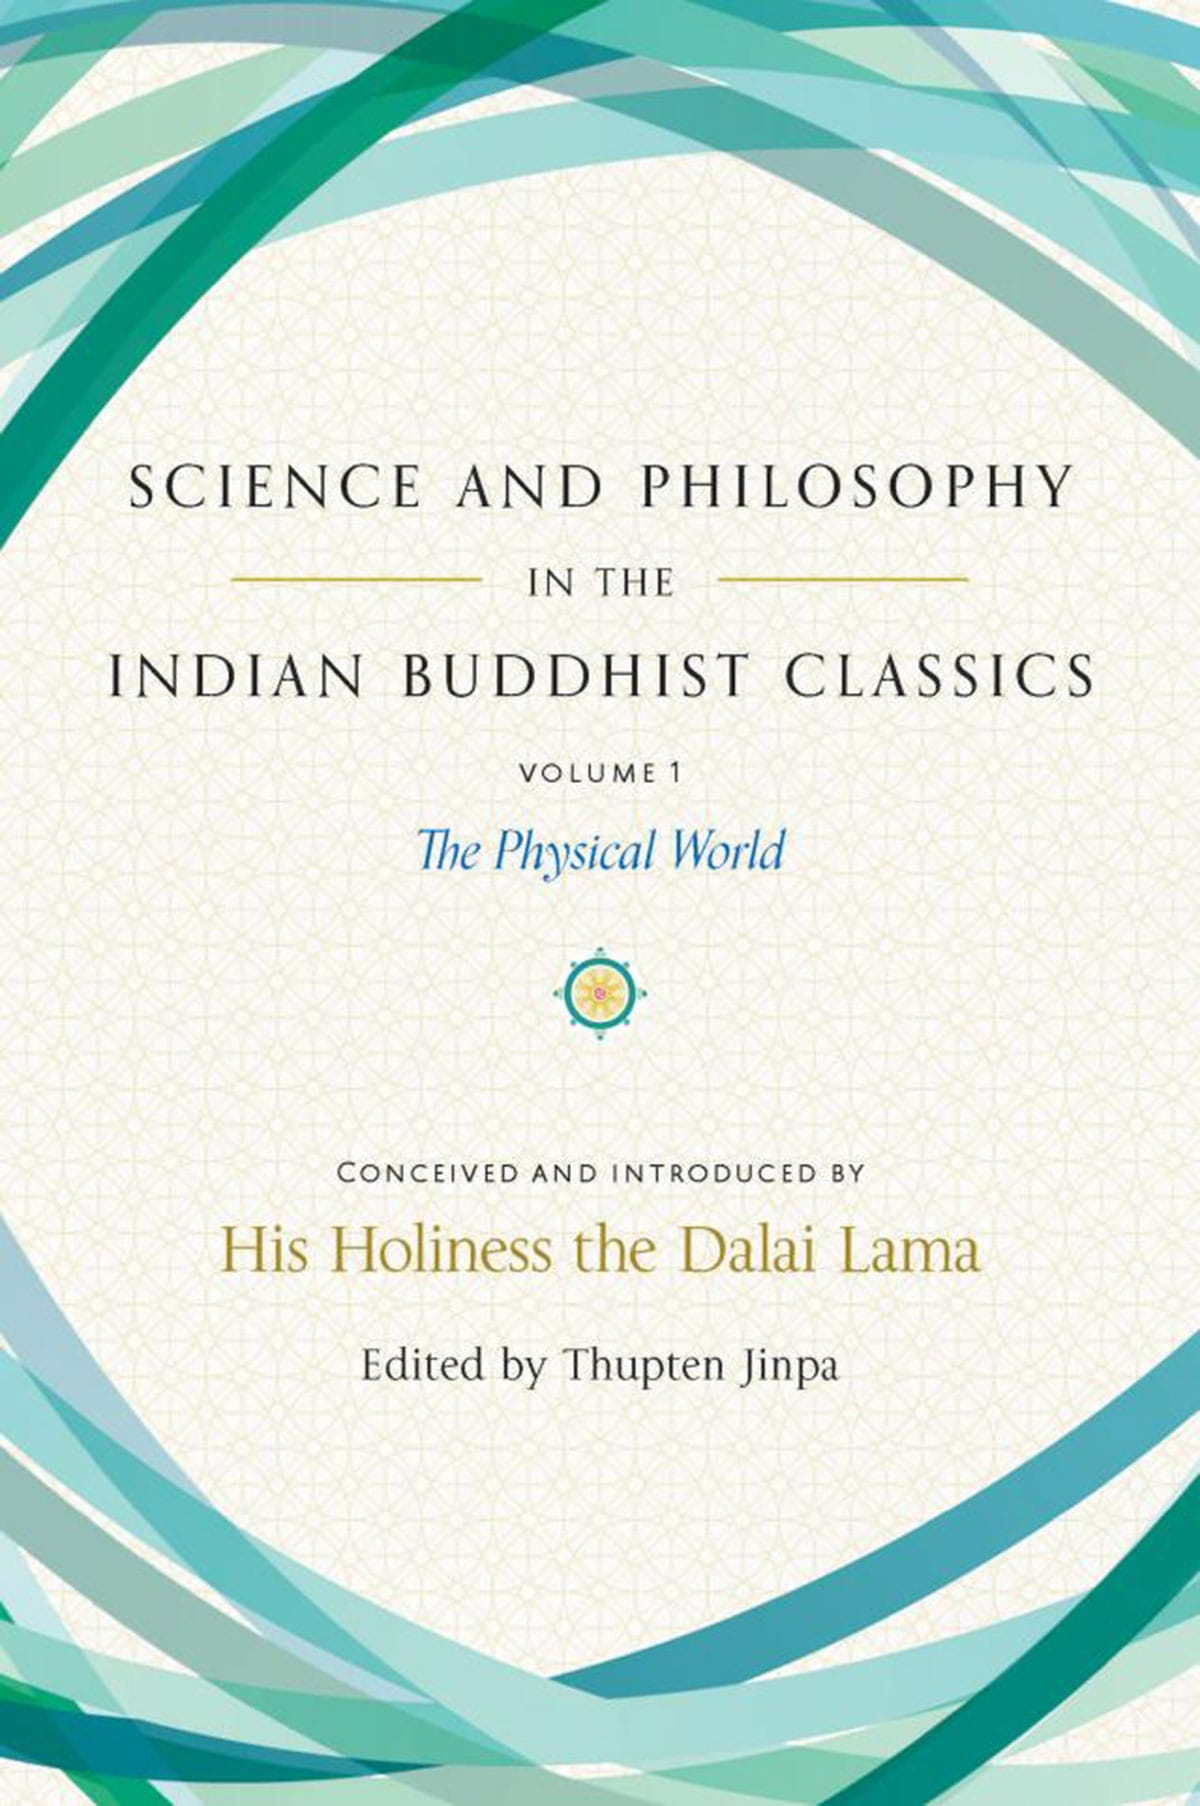 Book cover for Science and Philosophy in the Indian Buddhist classics. It is beige with green and blue swirls on the top and bottom.